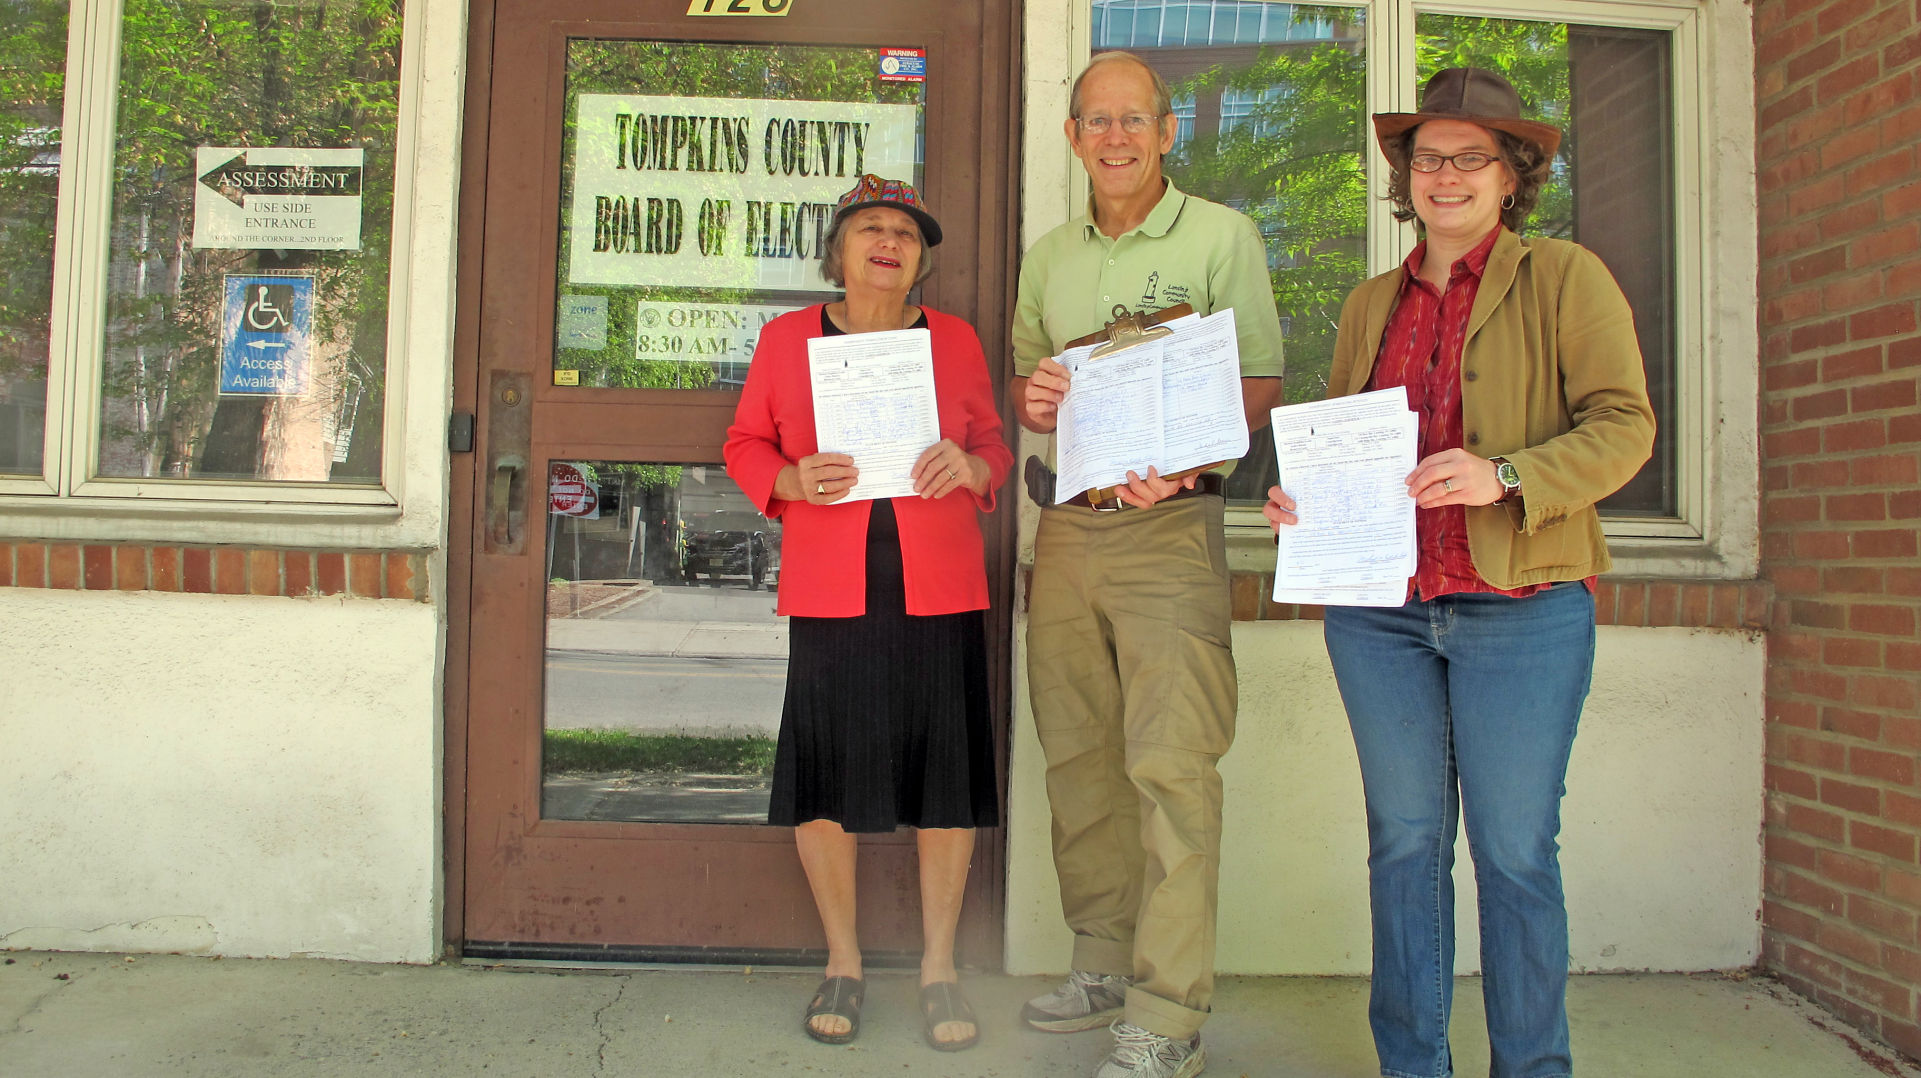 Andra Benson, Michael Koplinka-Loehr, and Bronwyn Losey at the Tompkins County Board of Elections.